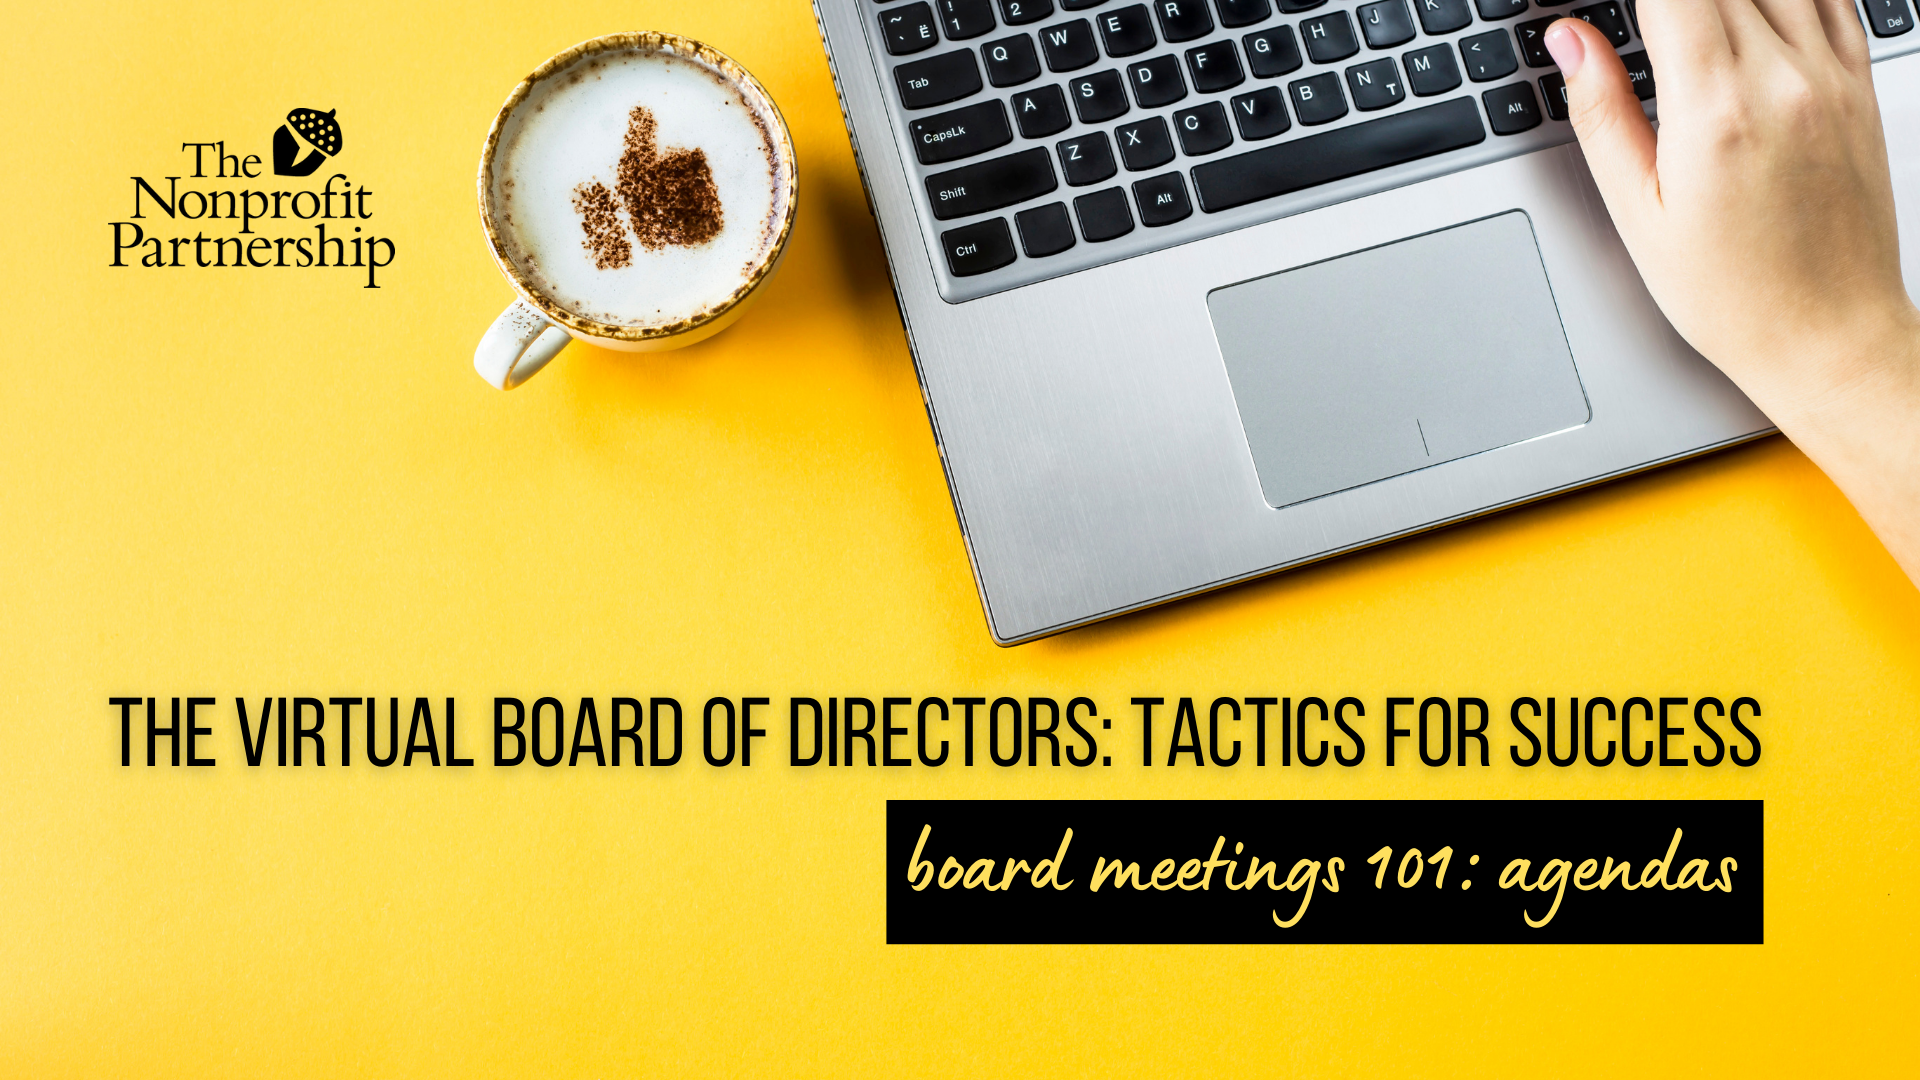 [Zoom Meeting] The Virtual Board of Directors: Tactics for Success - Board Meetings 101: Agendas